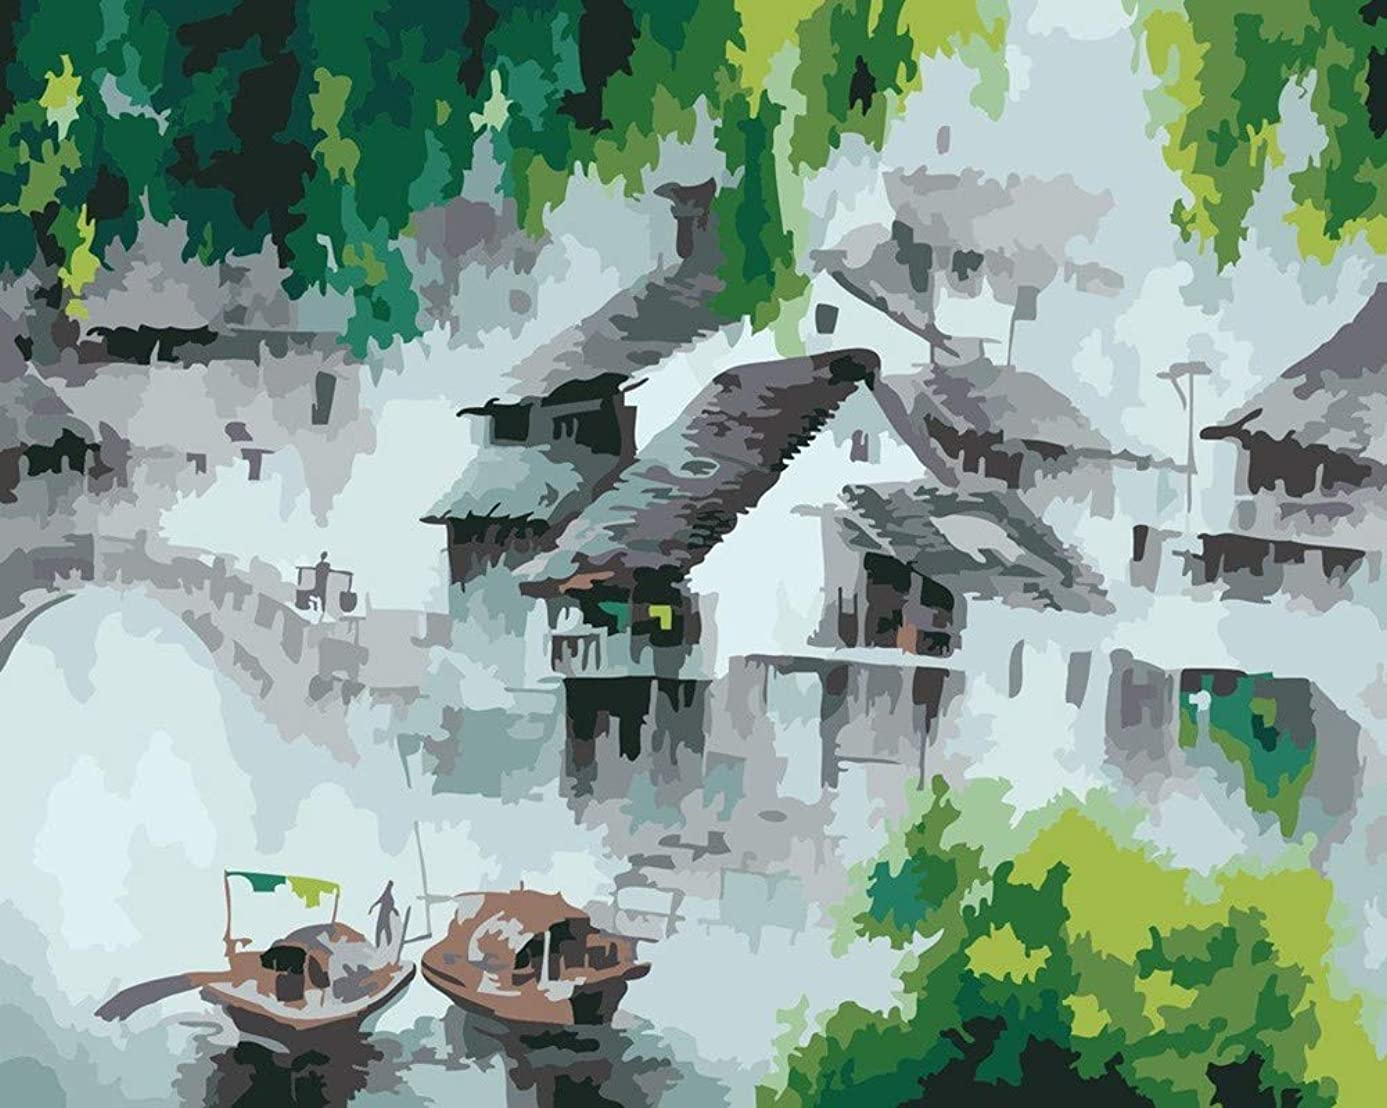 YEESAM ART DIY Paint by Numbers for Adults Beginner Kids, Chinese Ink Dream Water Township 16x20 inch Linen Canvas Acrylic Stress Less Number Painting Gifts